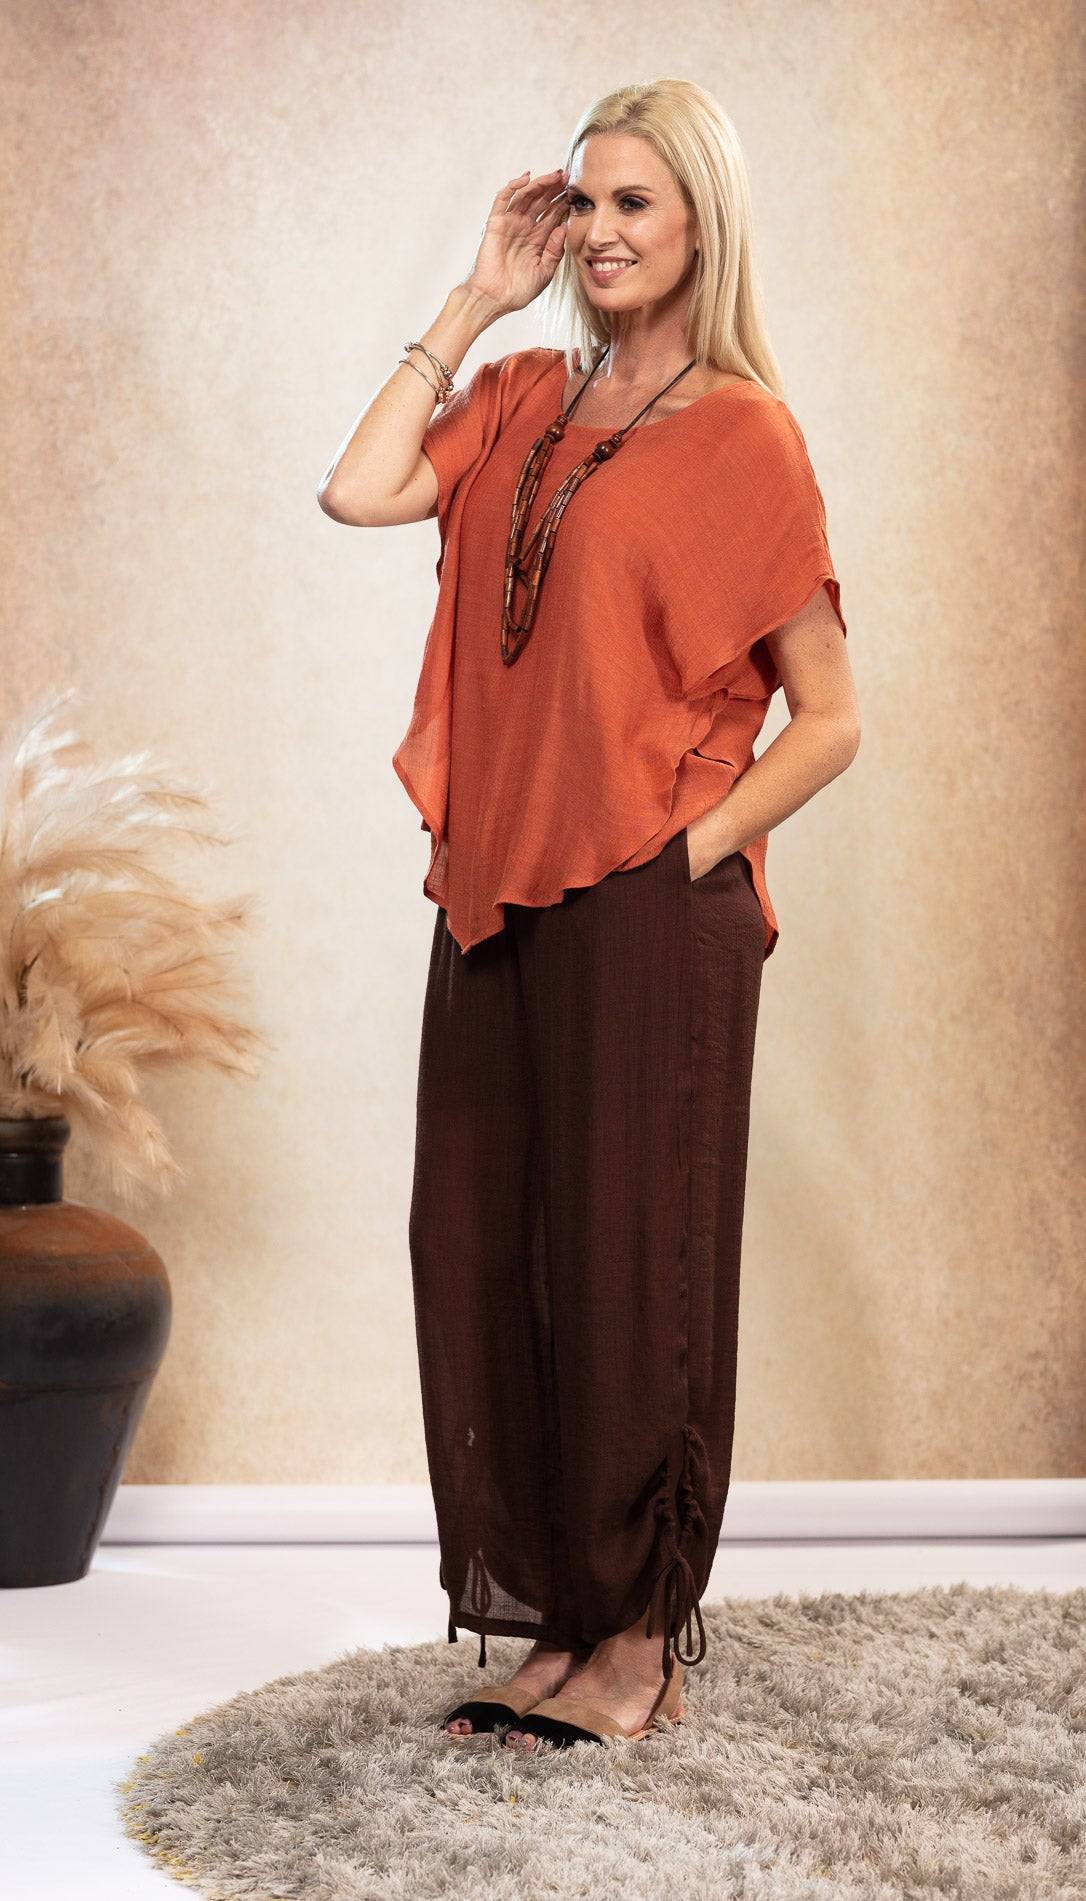 Long Bamboo Pants. Chocolate Brown Pants. Rust Earthy Orange Bamboo Top. Black and Tan Sandals. Suede Avarca Sandals. Natural Look.